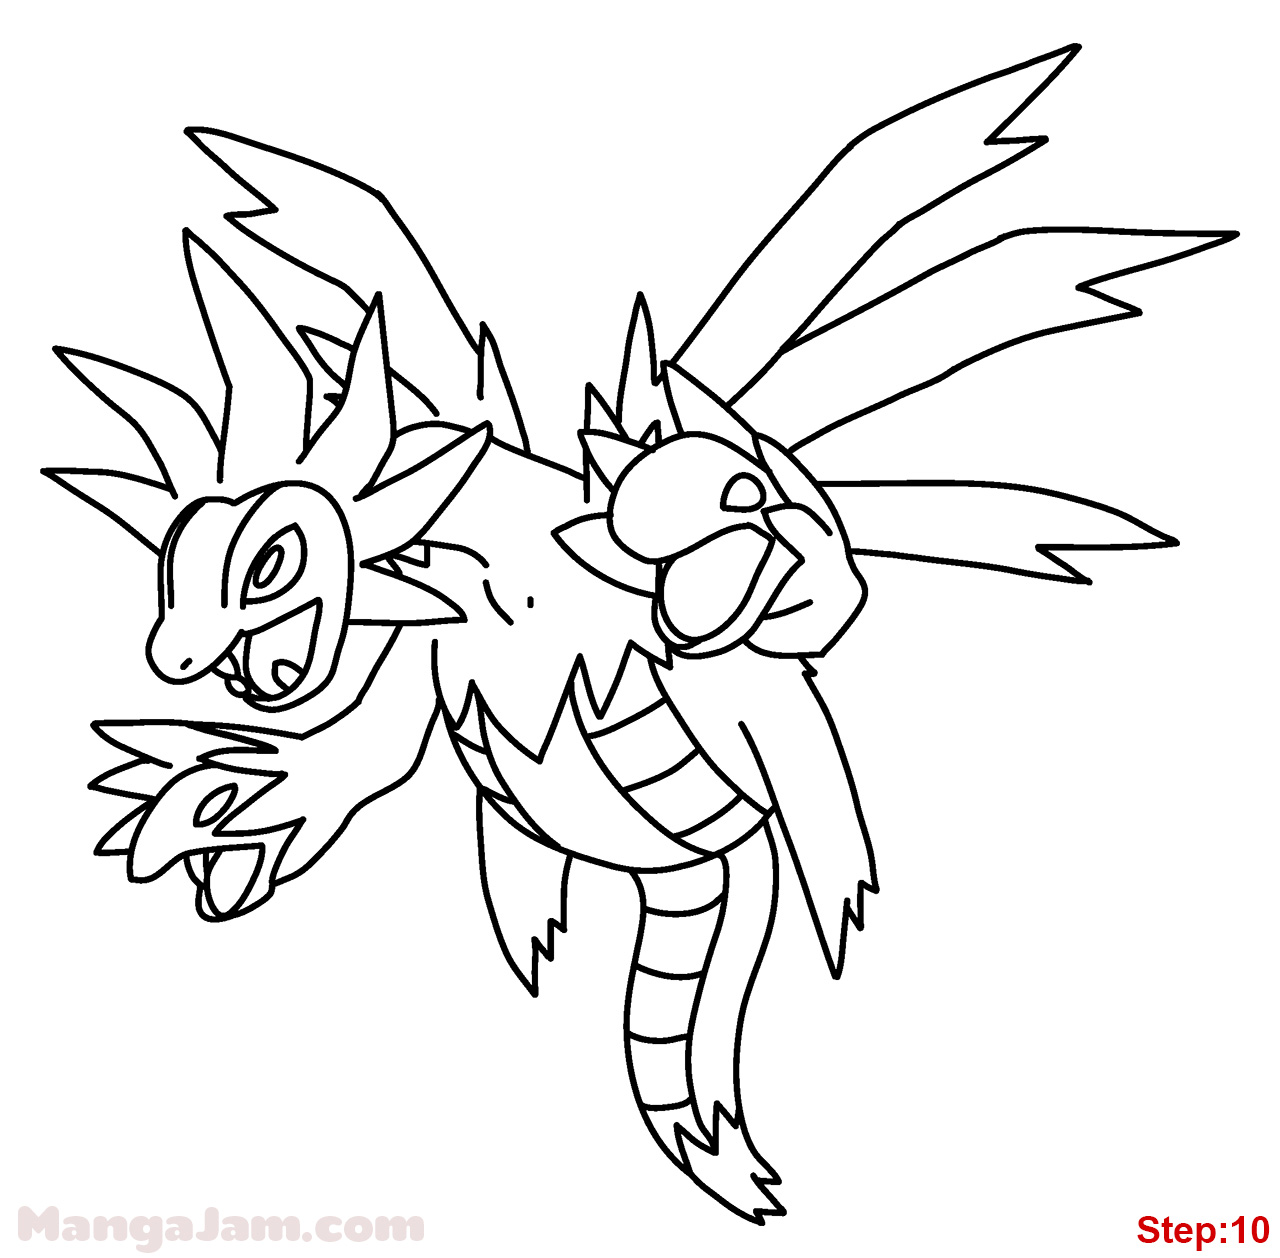 Pokemon coloring pages hydreigon - Step